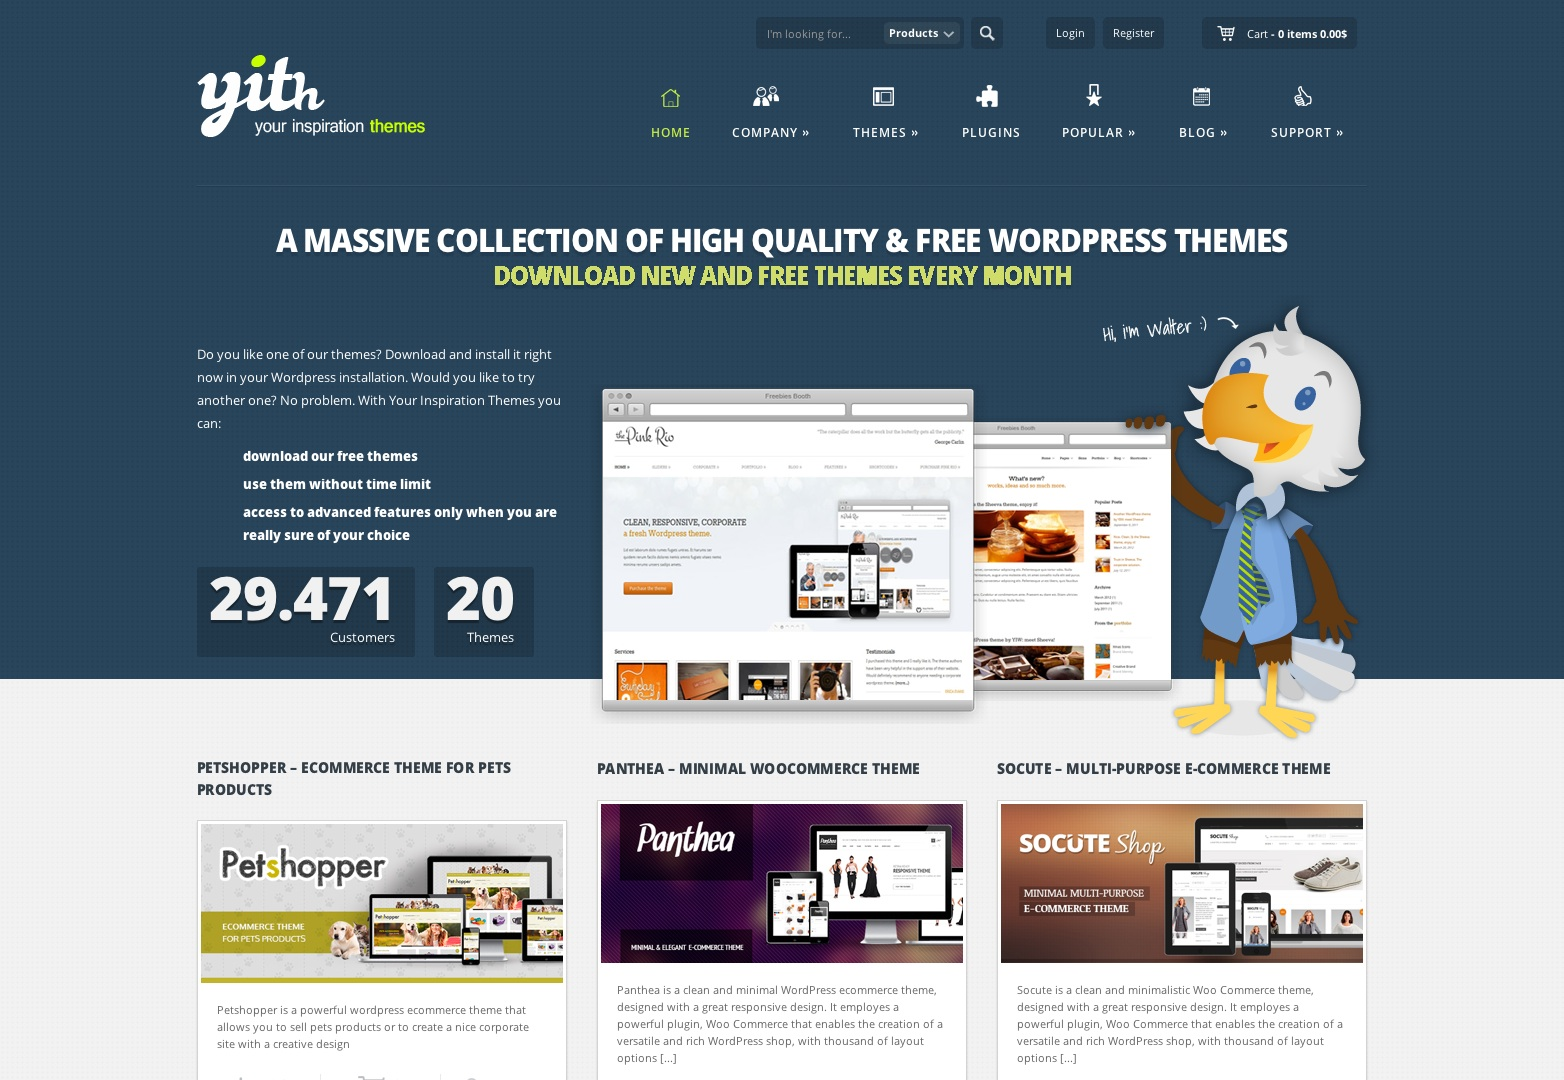 FREE WORDPRESS THEMES DOWNLOAD: Your Inspiration Themes